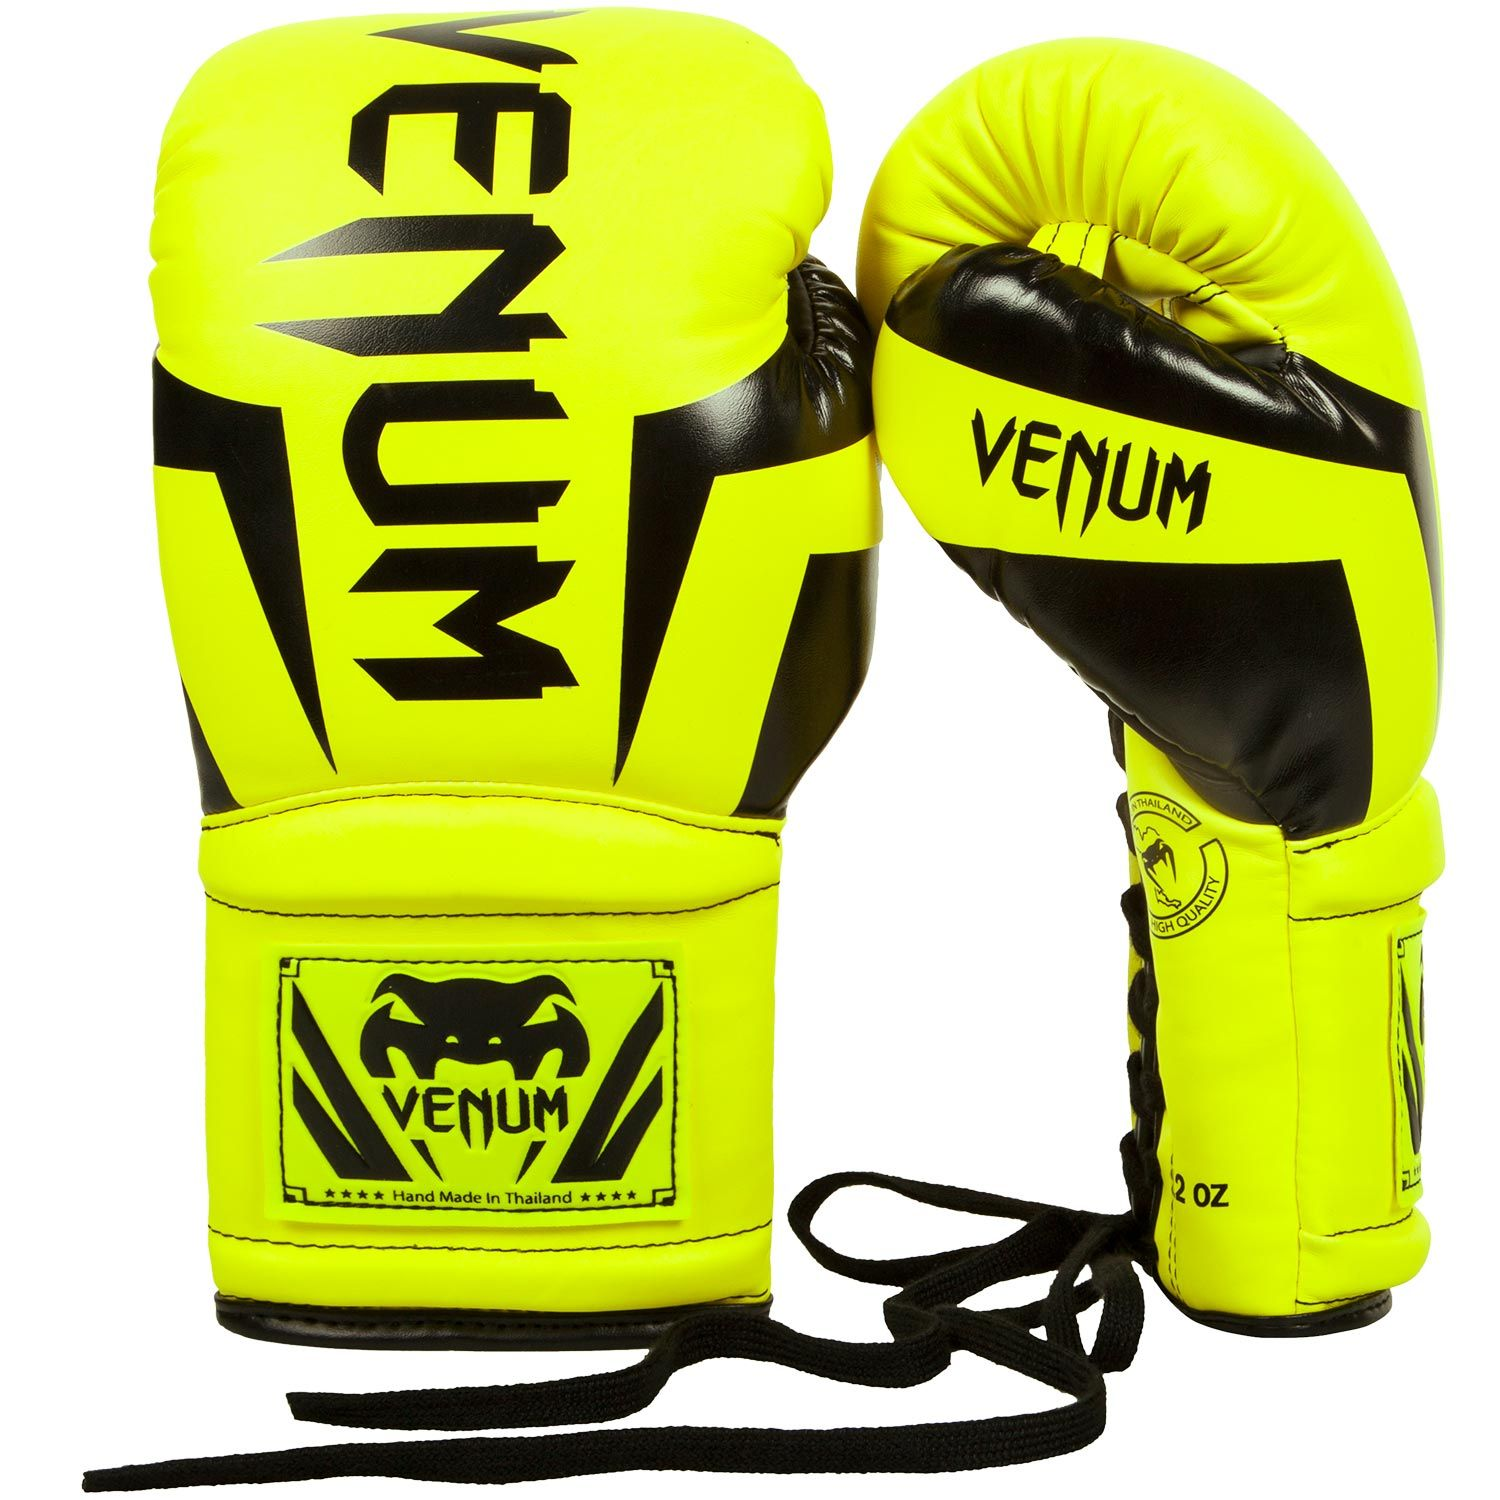 Venum Elite Boxing Gloves - with Laces - Neo Yellow